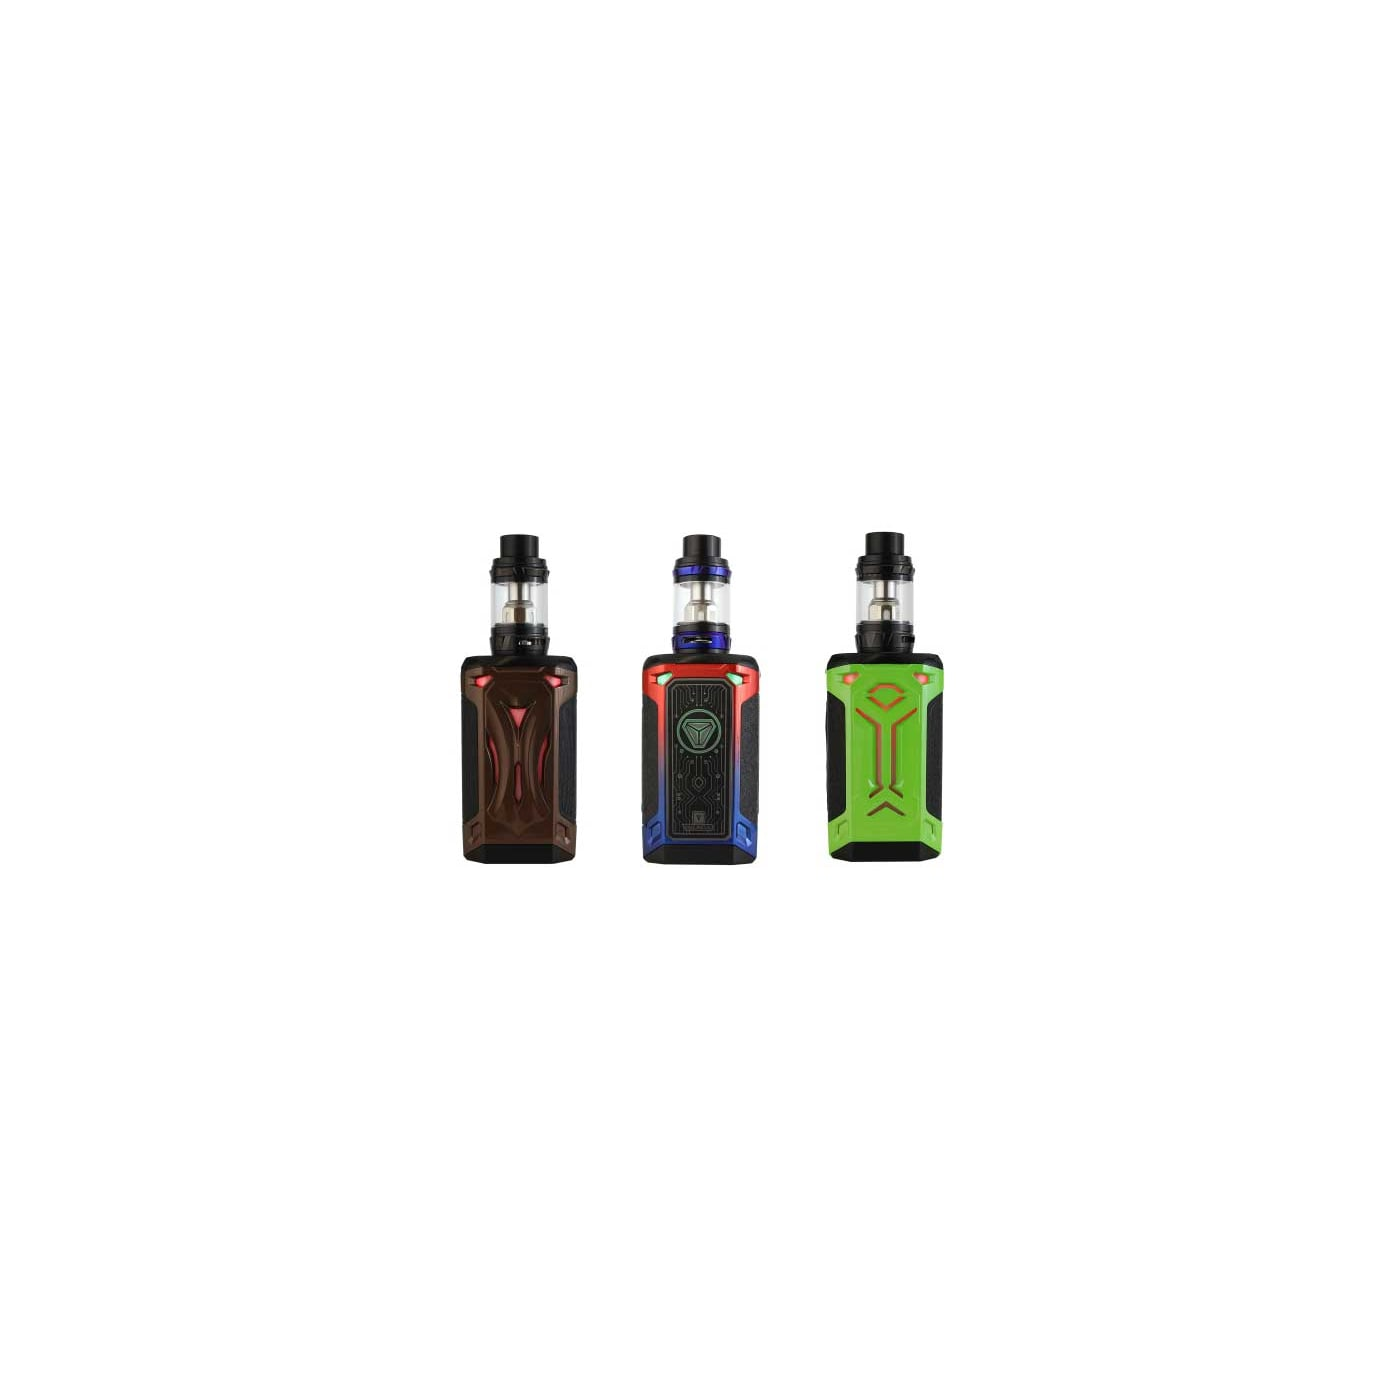 Vaporesso Switcher LE with NRG Kit